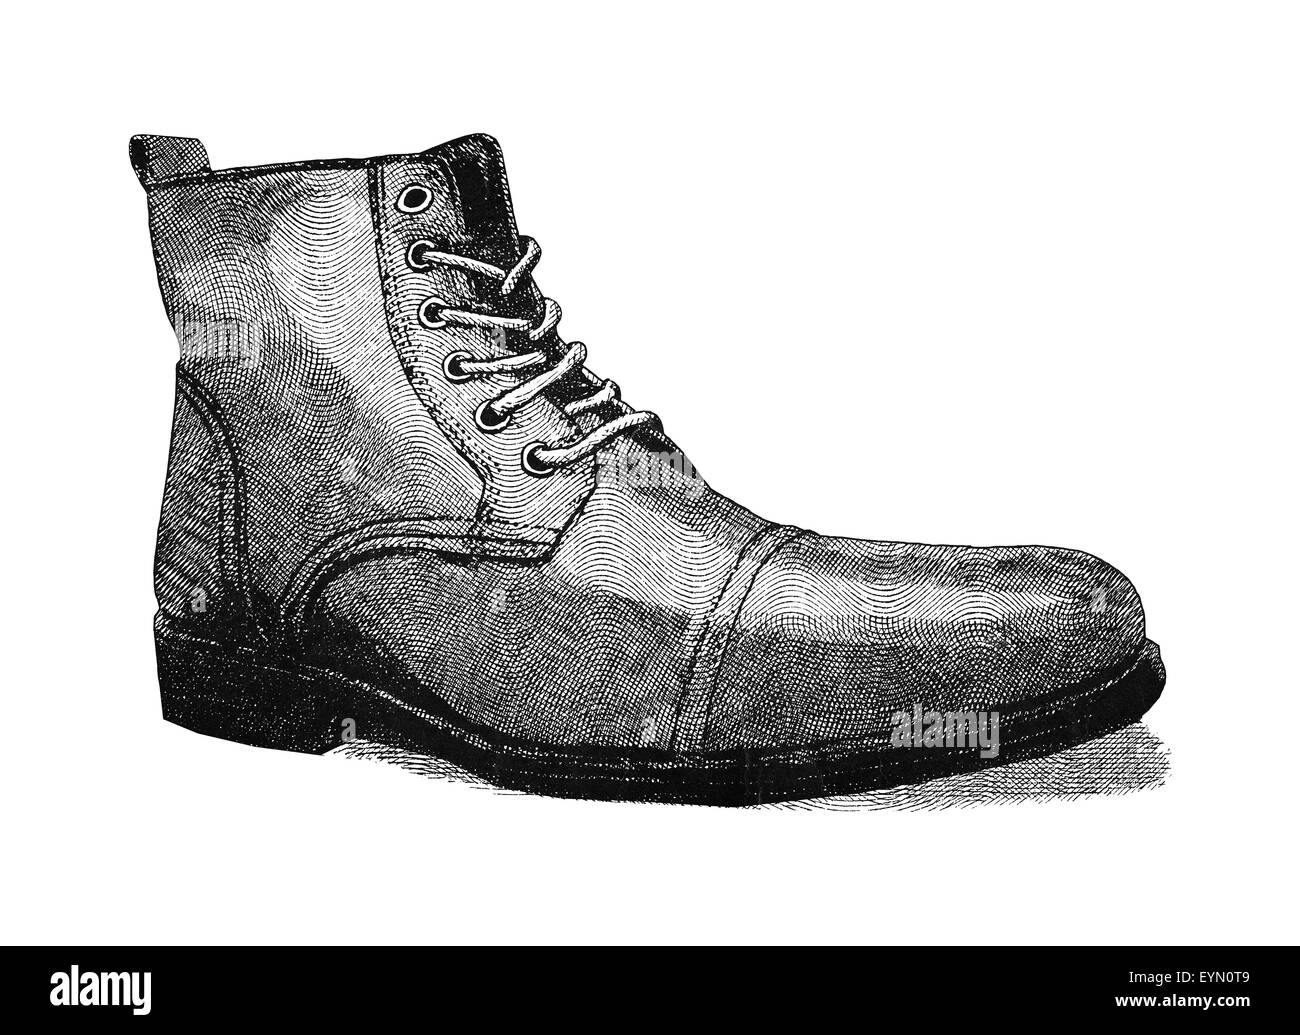 Original digital illustration of a shoe, in style of old engravings. Stock Photo